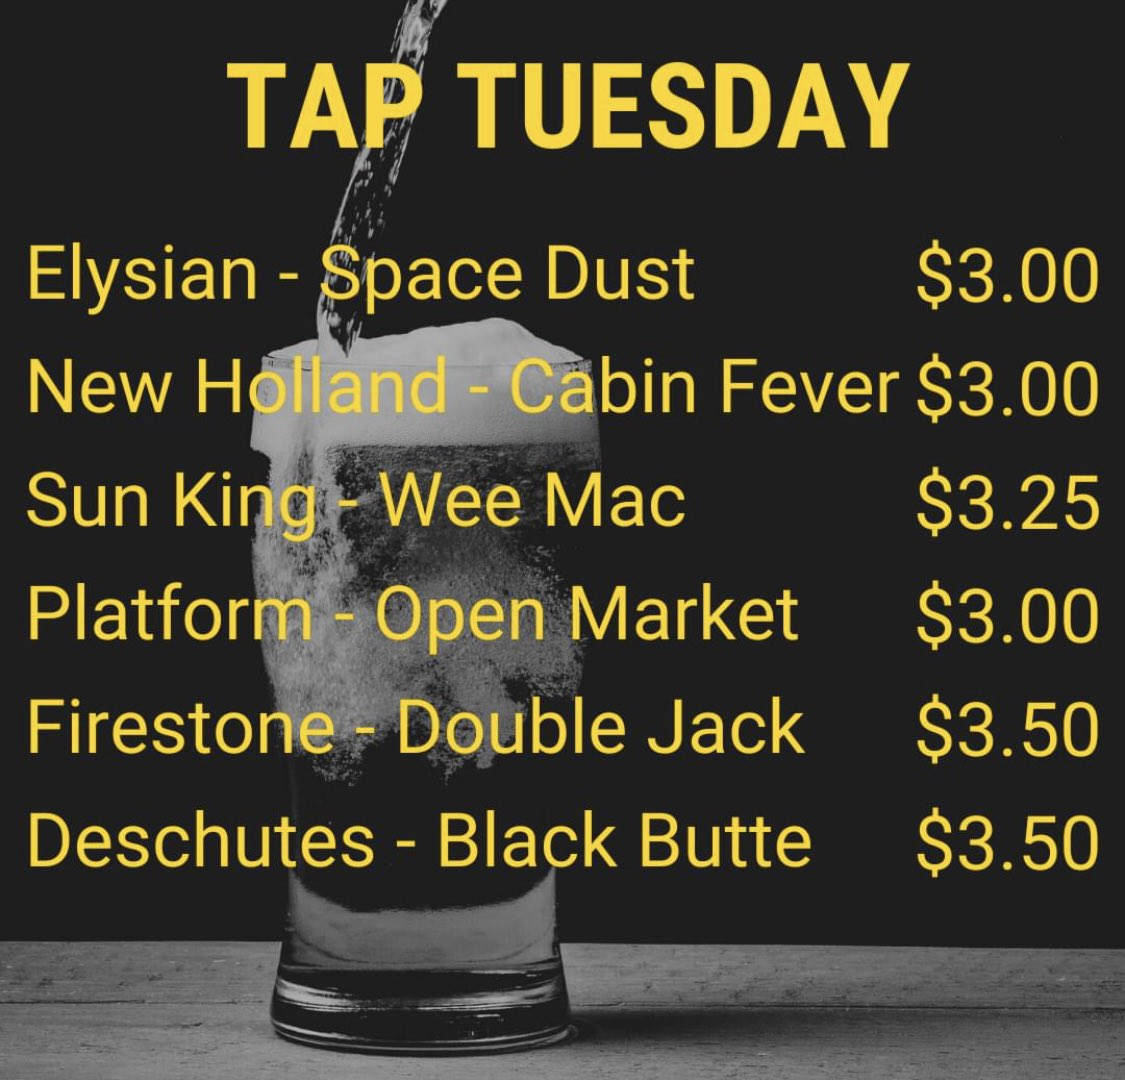 50% off draft beer for #TapTuesday 🍻